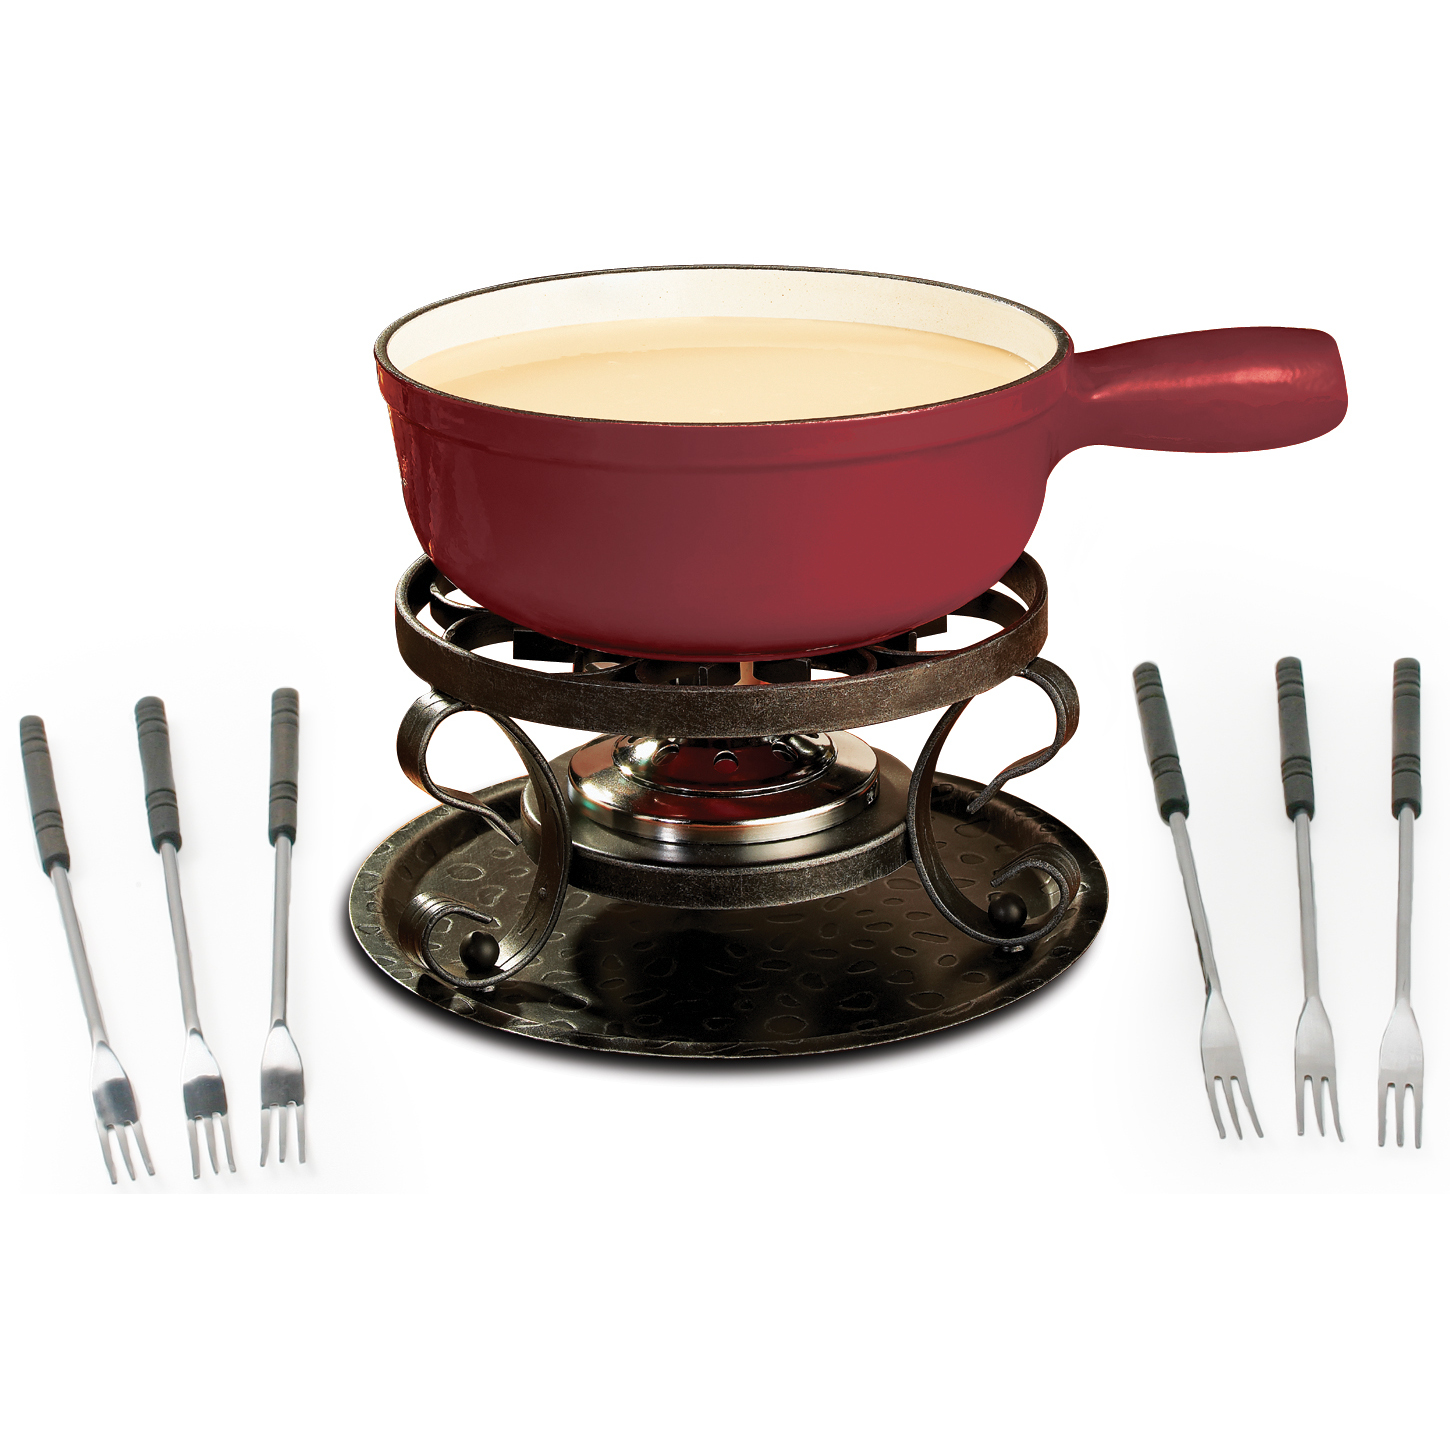 Swissmar Lugano Cherry Red Enameled Cast Iron 9 Piece Fondue Set